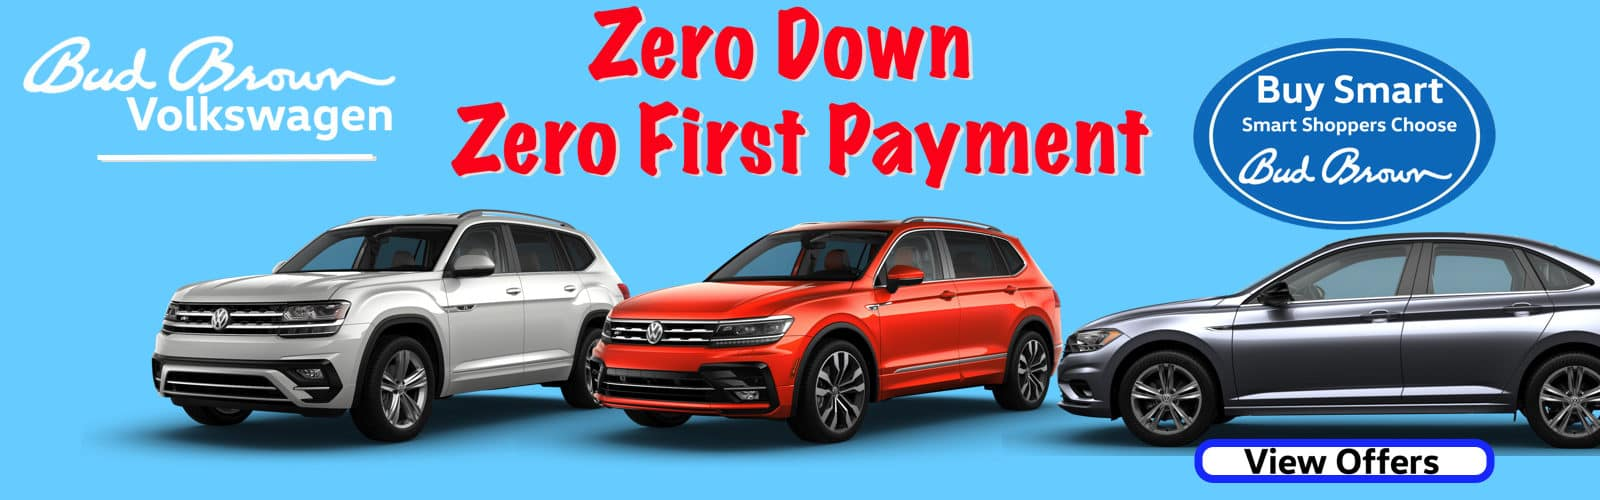 Bud Brown Makes your first lease payment